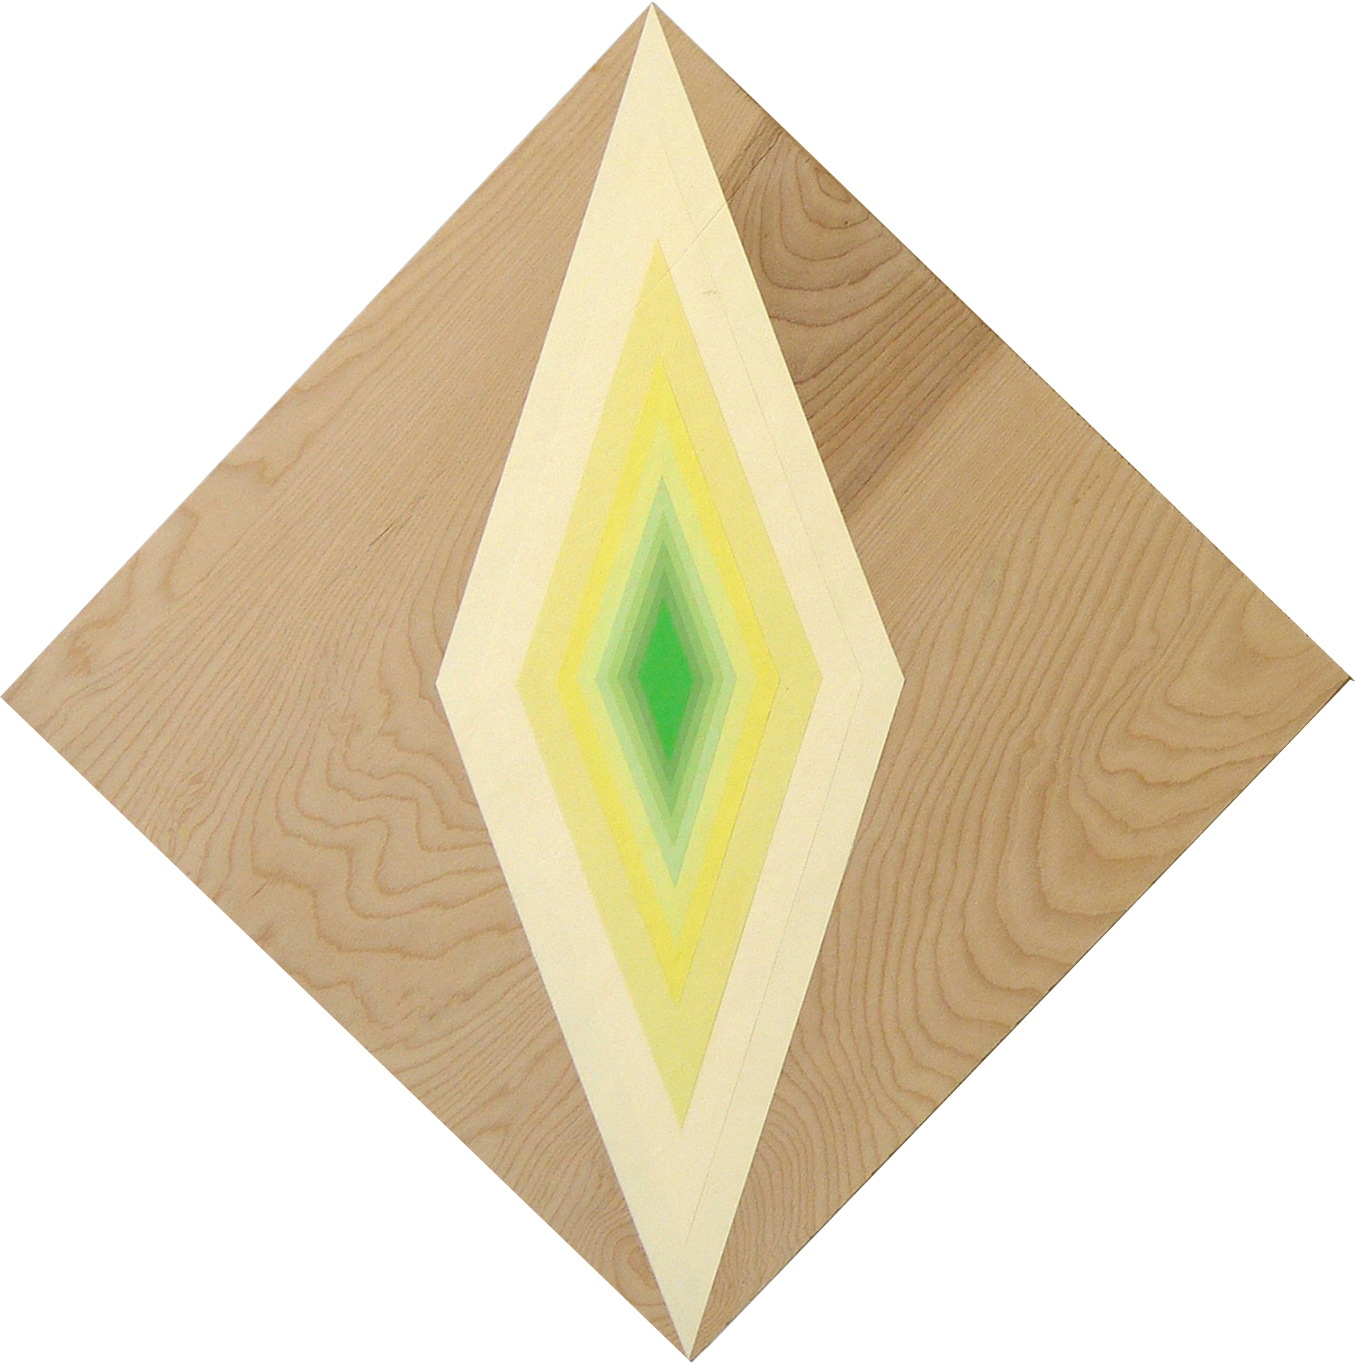 Untitled(Yellow Diamond)